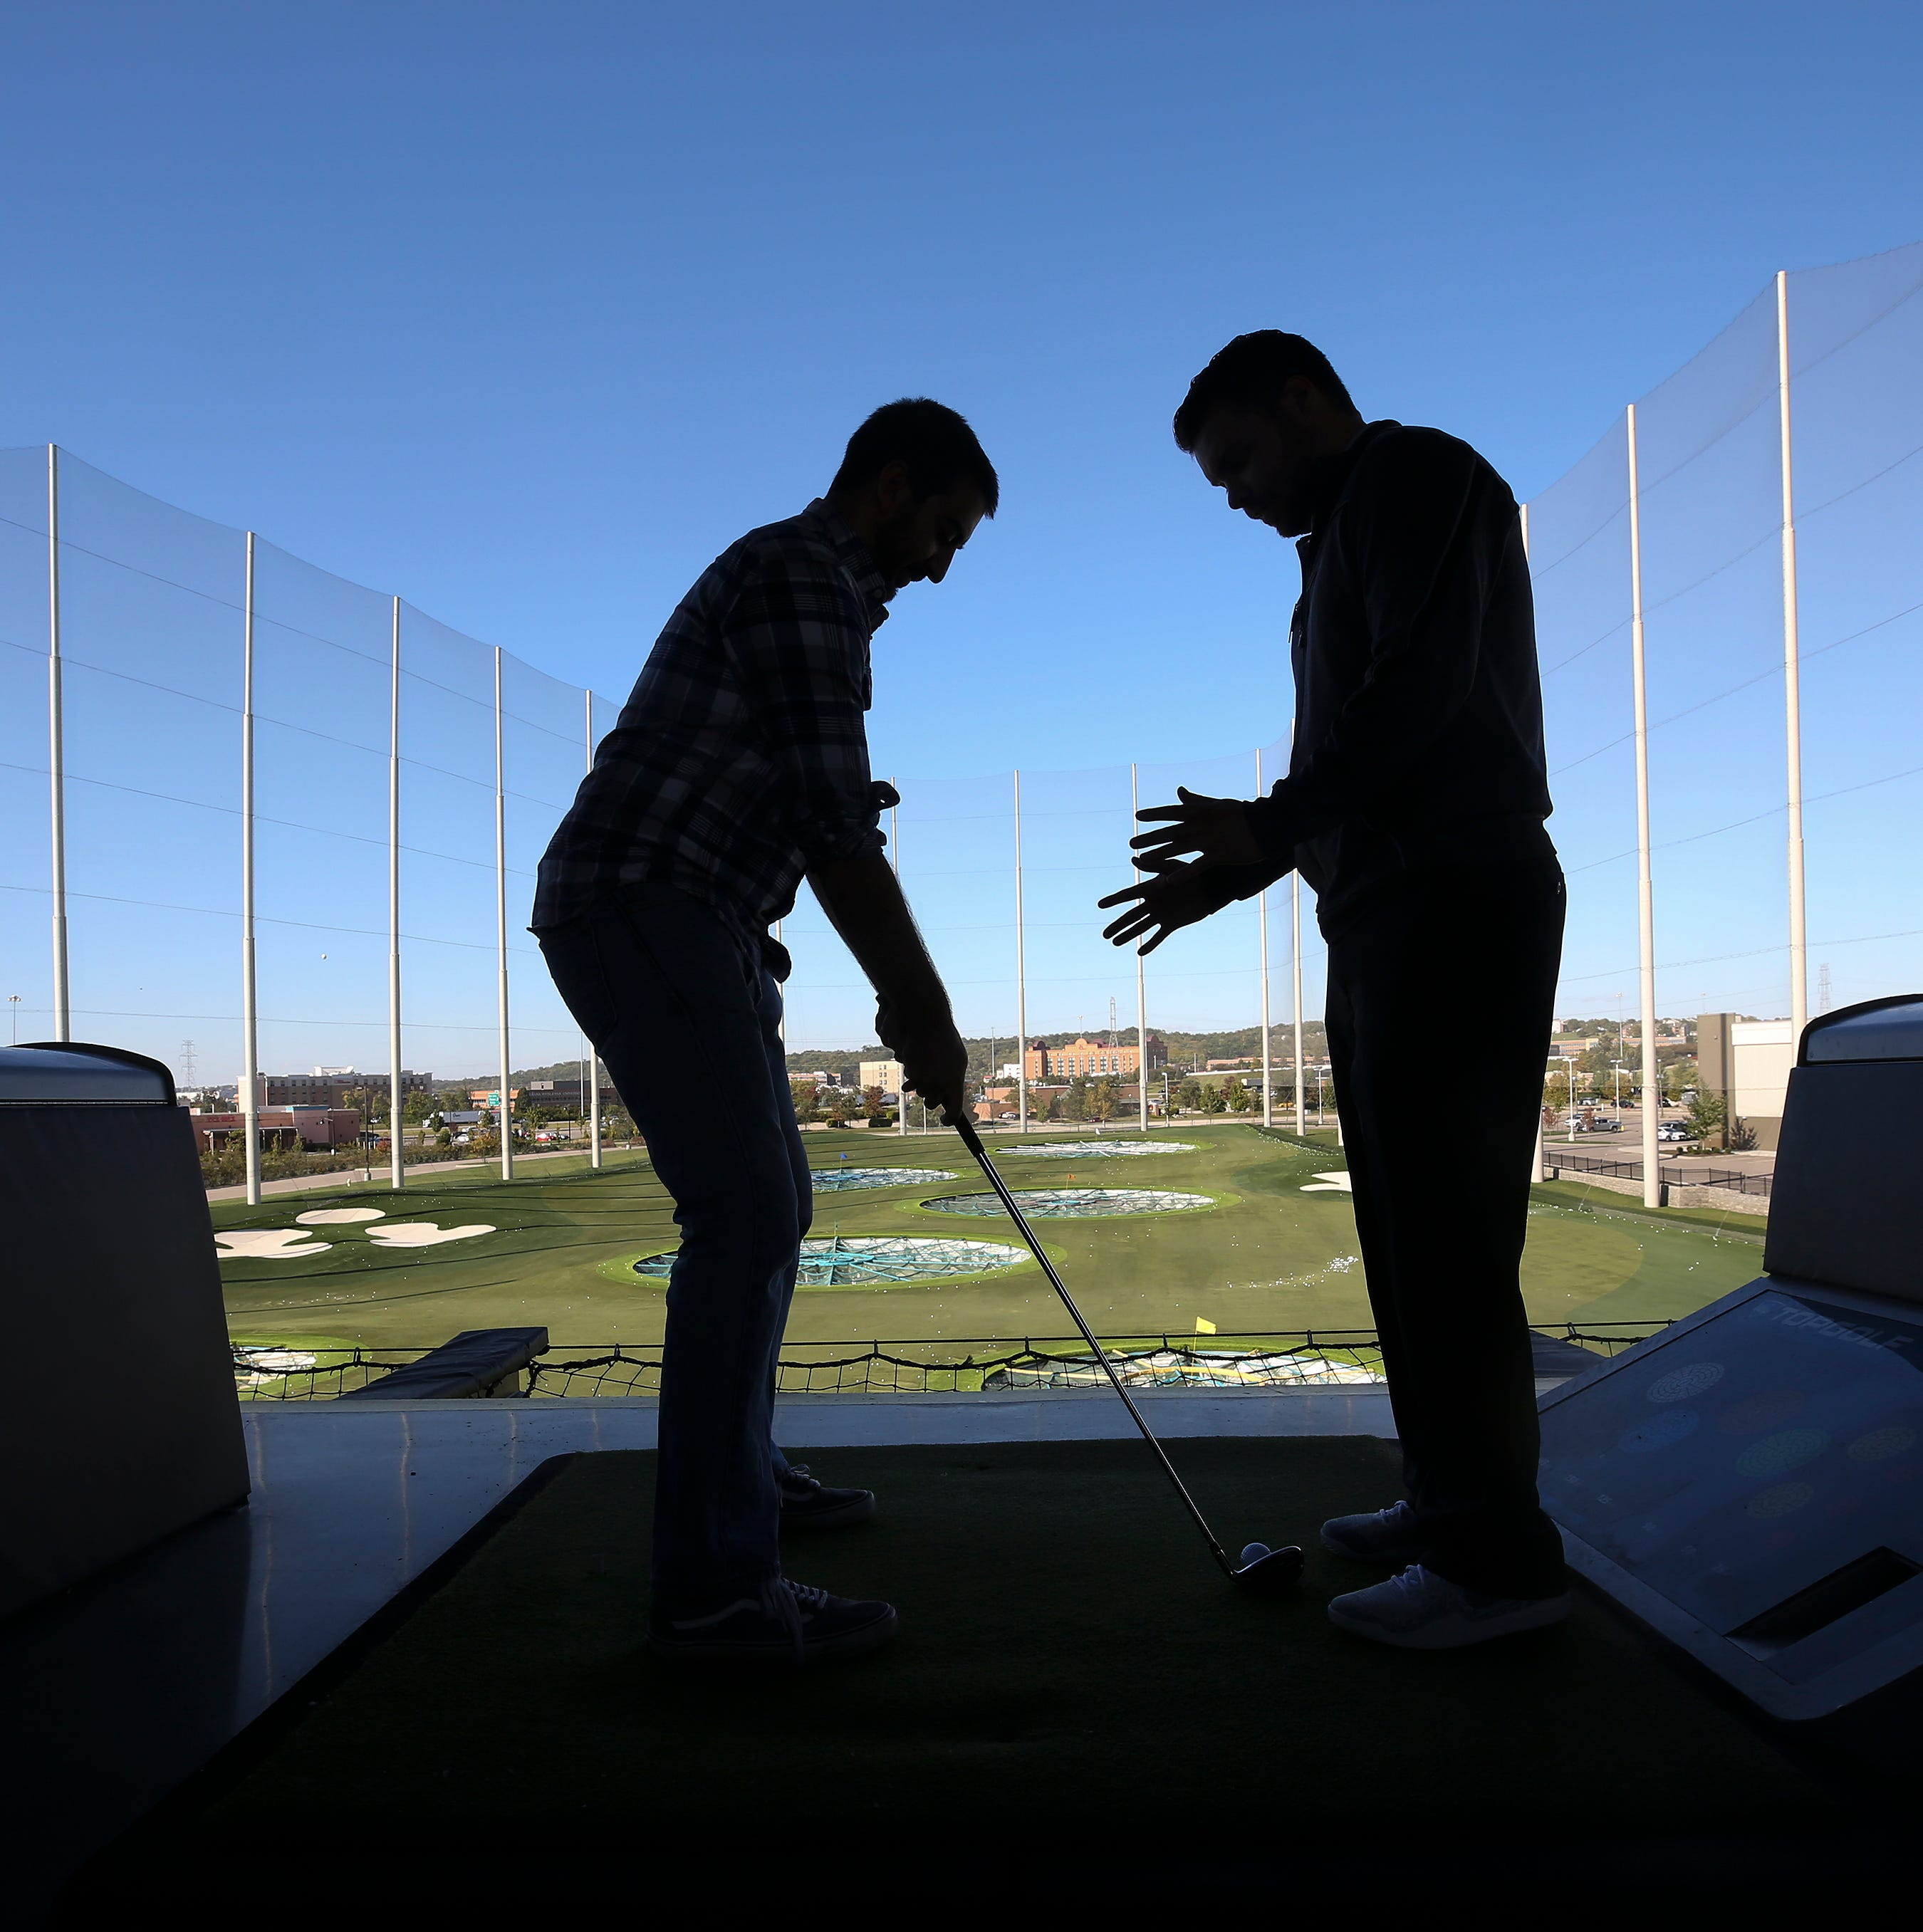 Is Topgolf as bad as Louisville opponents think? We went to find out.